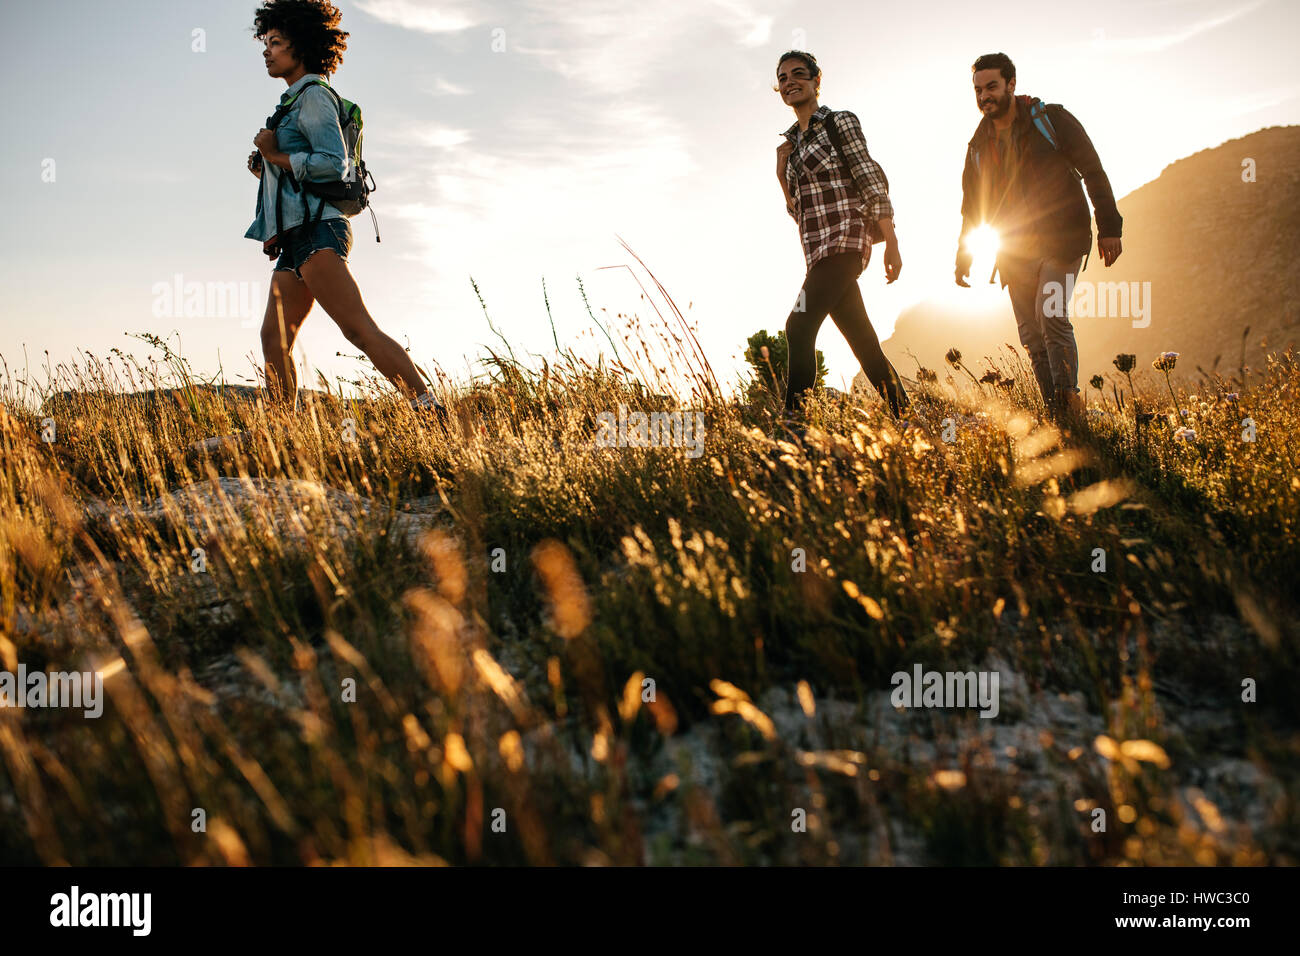 Three young friends on a country walk. Group of people hiking through countryside. - Stock Image